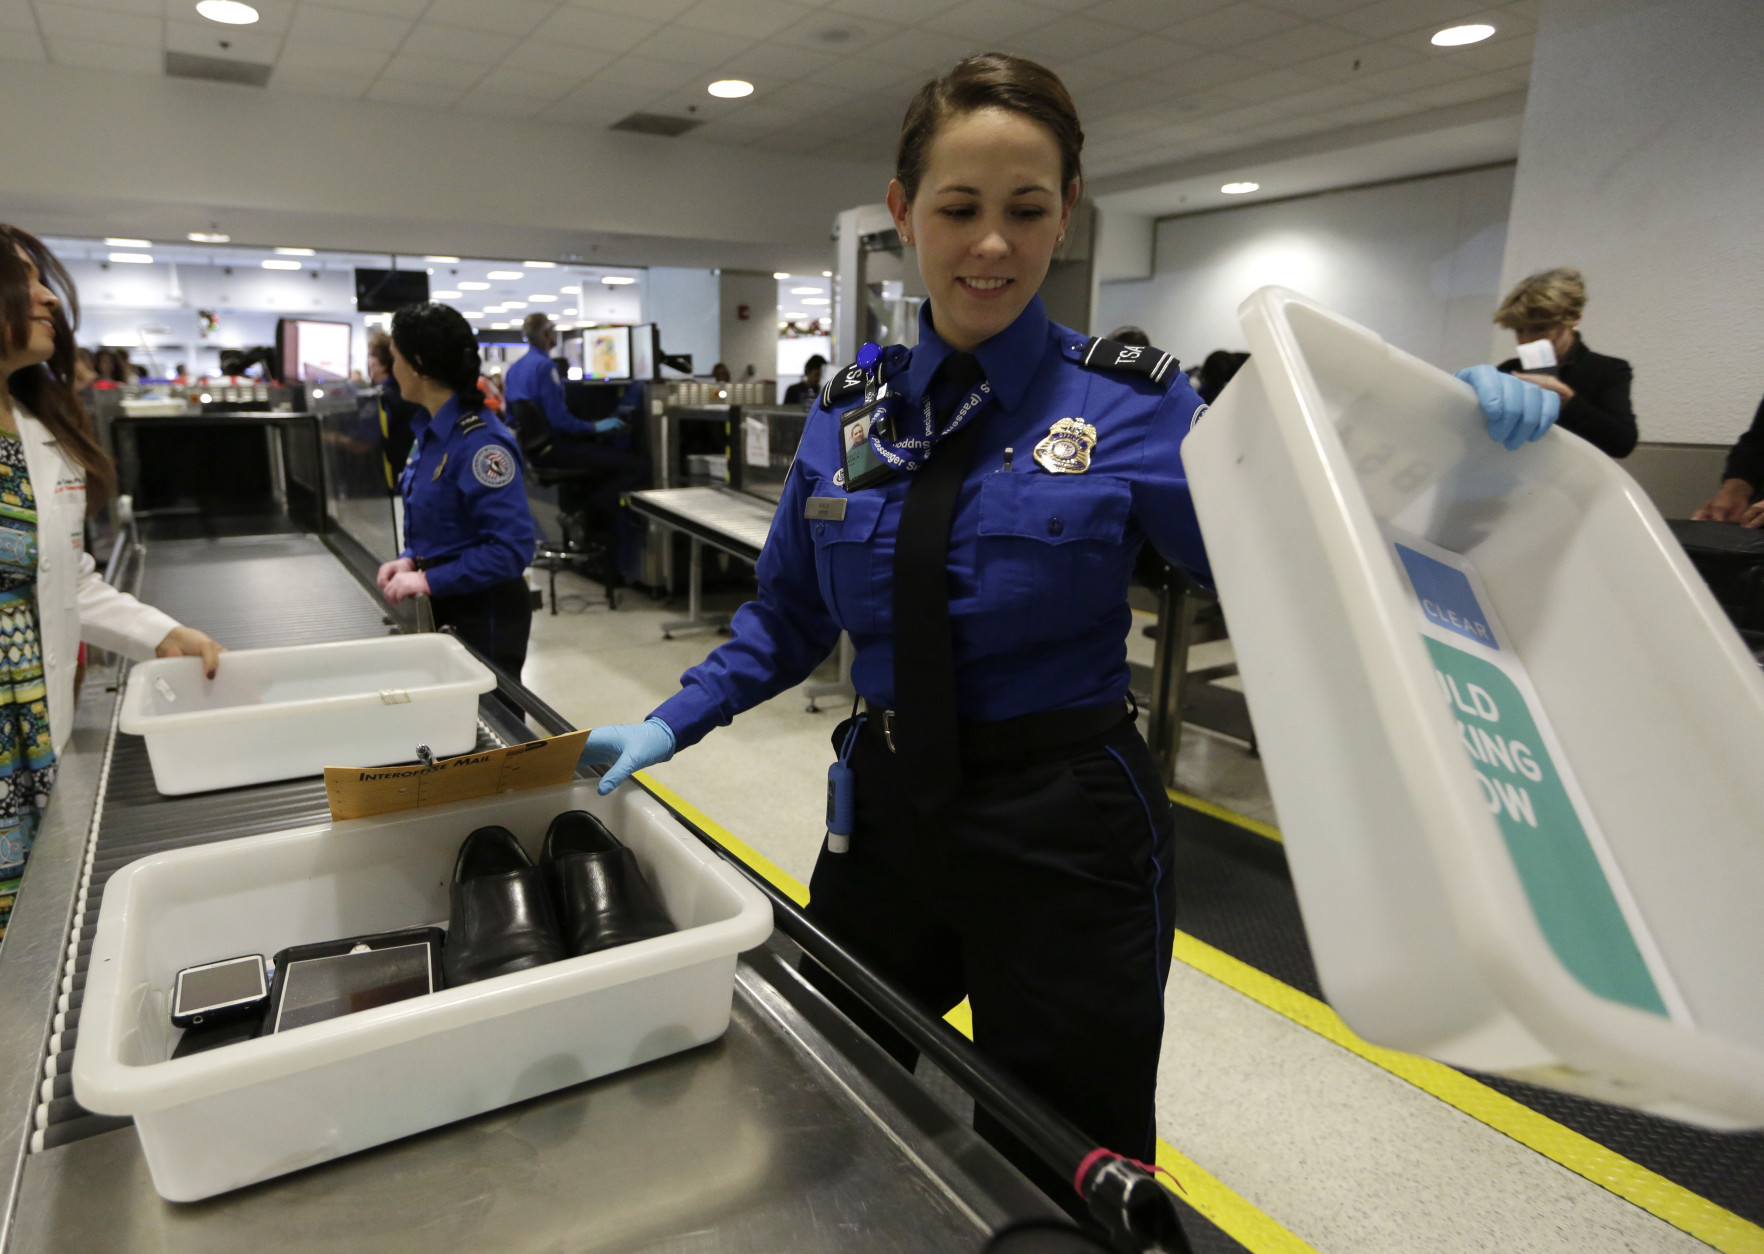 Union-backed bill pushes better pay for TSA airport